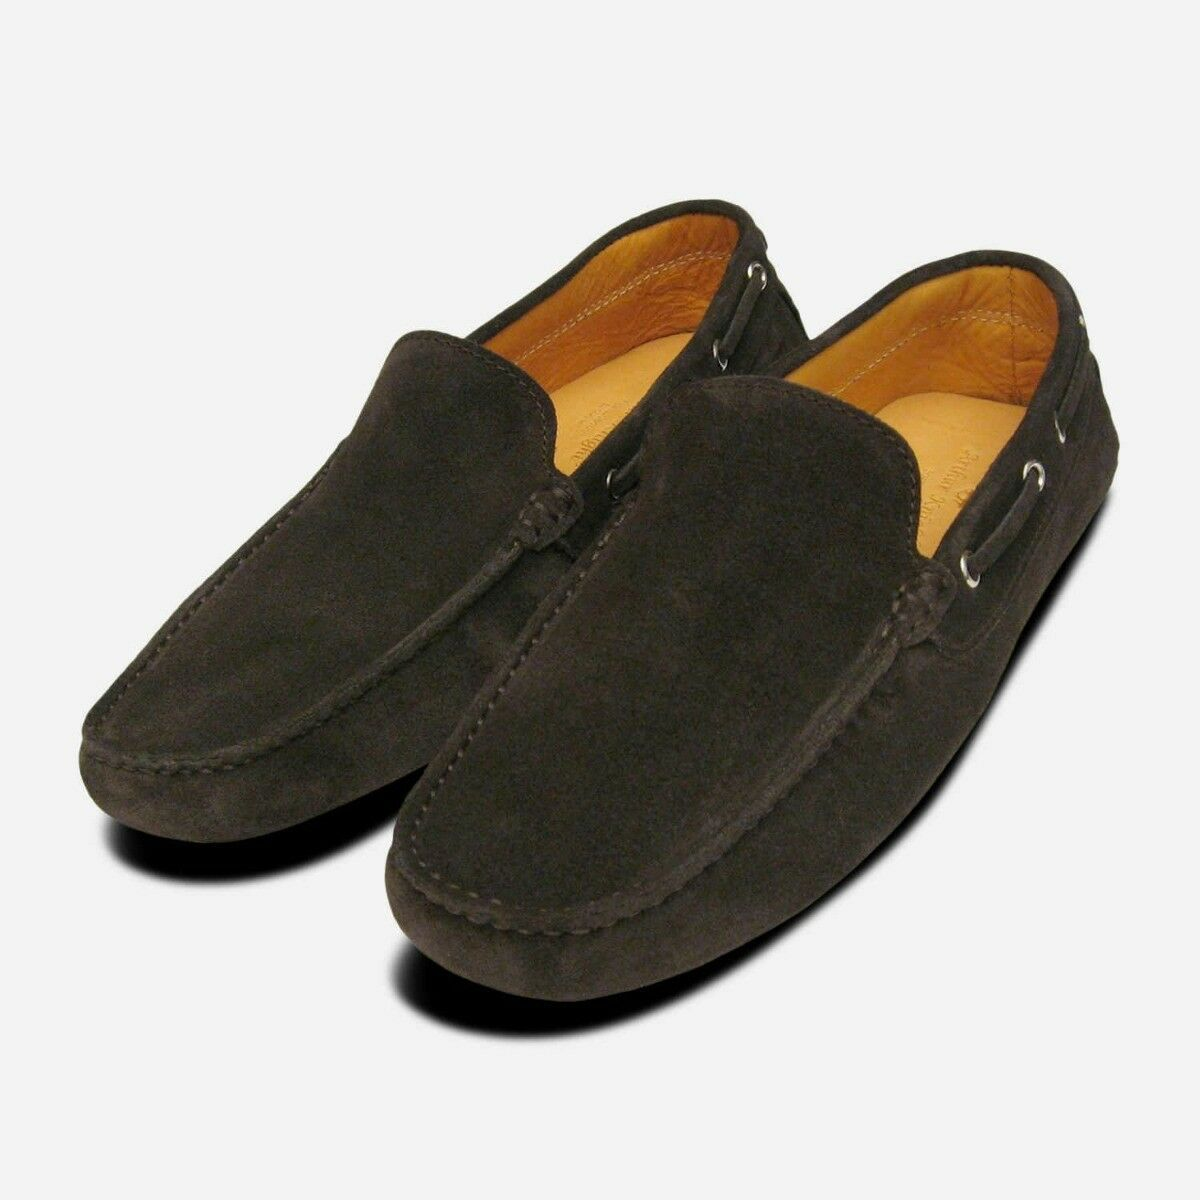 Dark Brown Suede Italian Driving shoes Moccasins